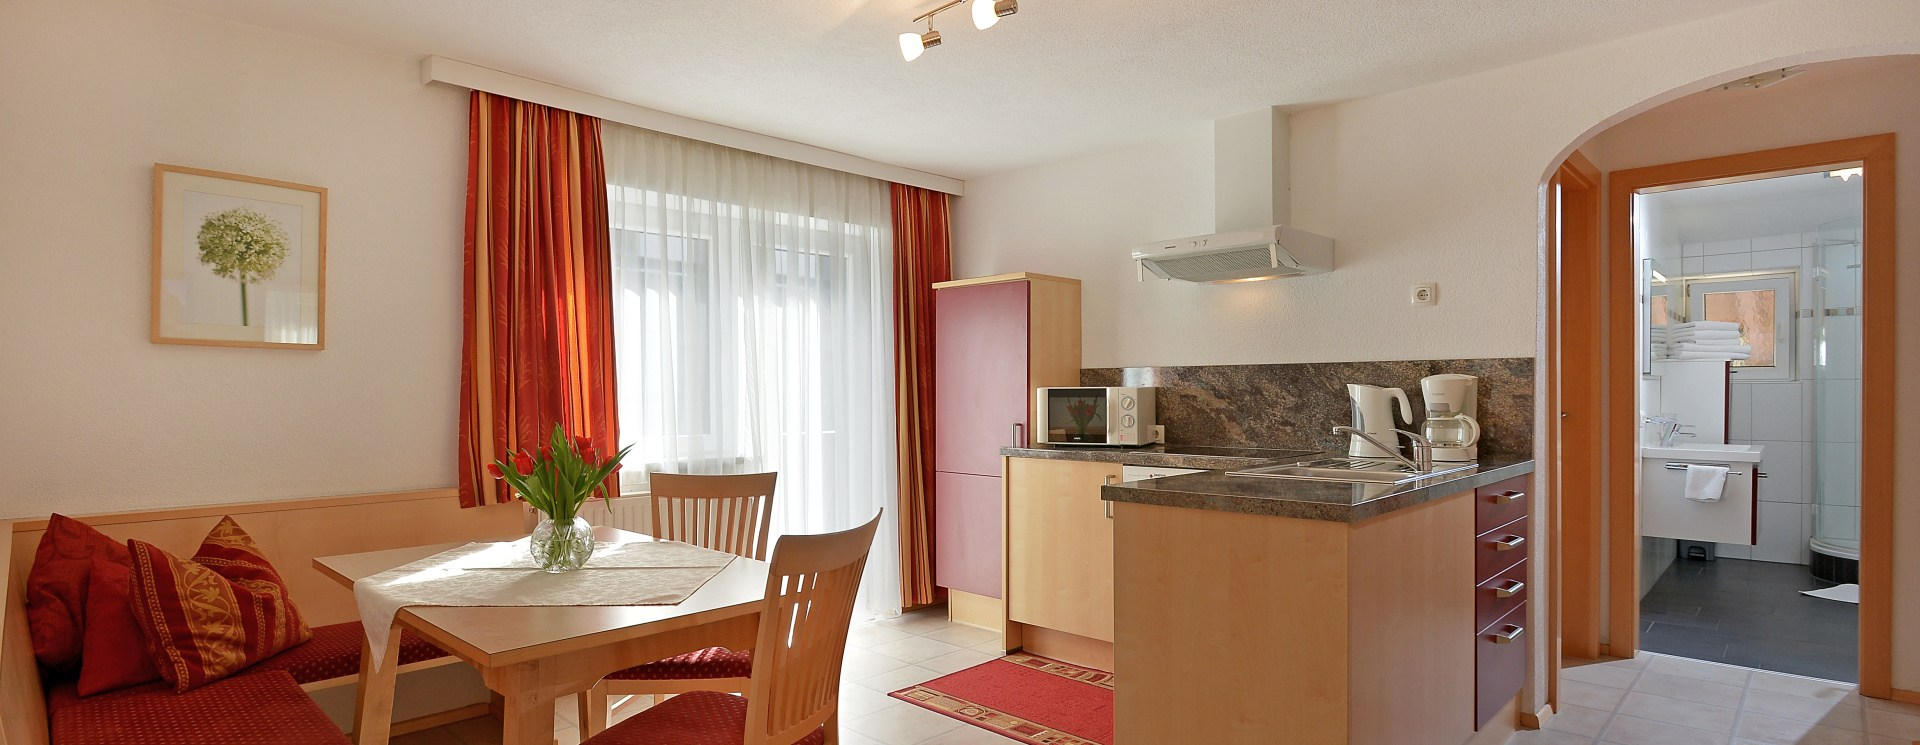 /userfiles/ferienwohnung_dorfstubn_soell_dorf_59_thersia_ager_appartement_1_wohnkueche1_1404835259.jpg